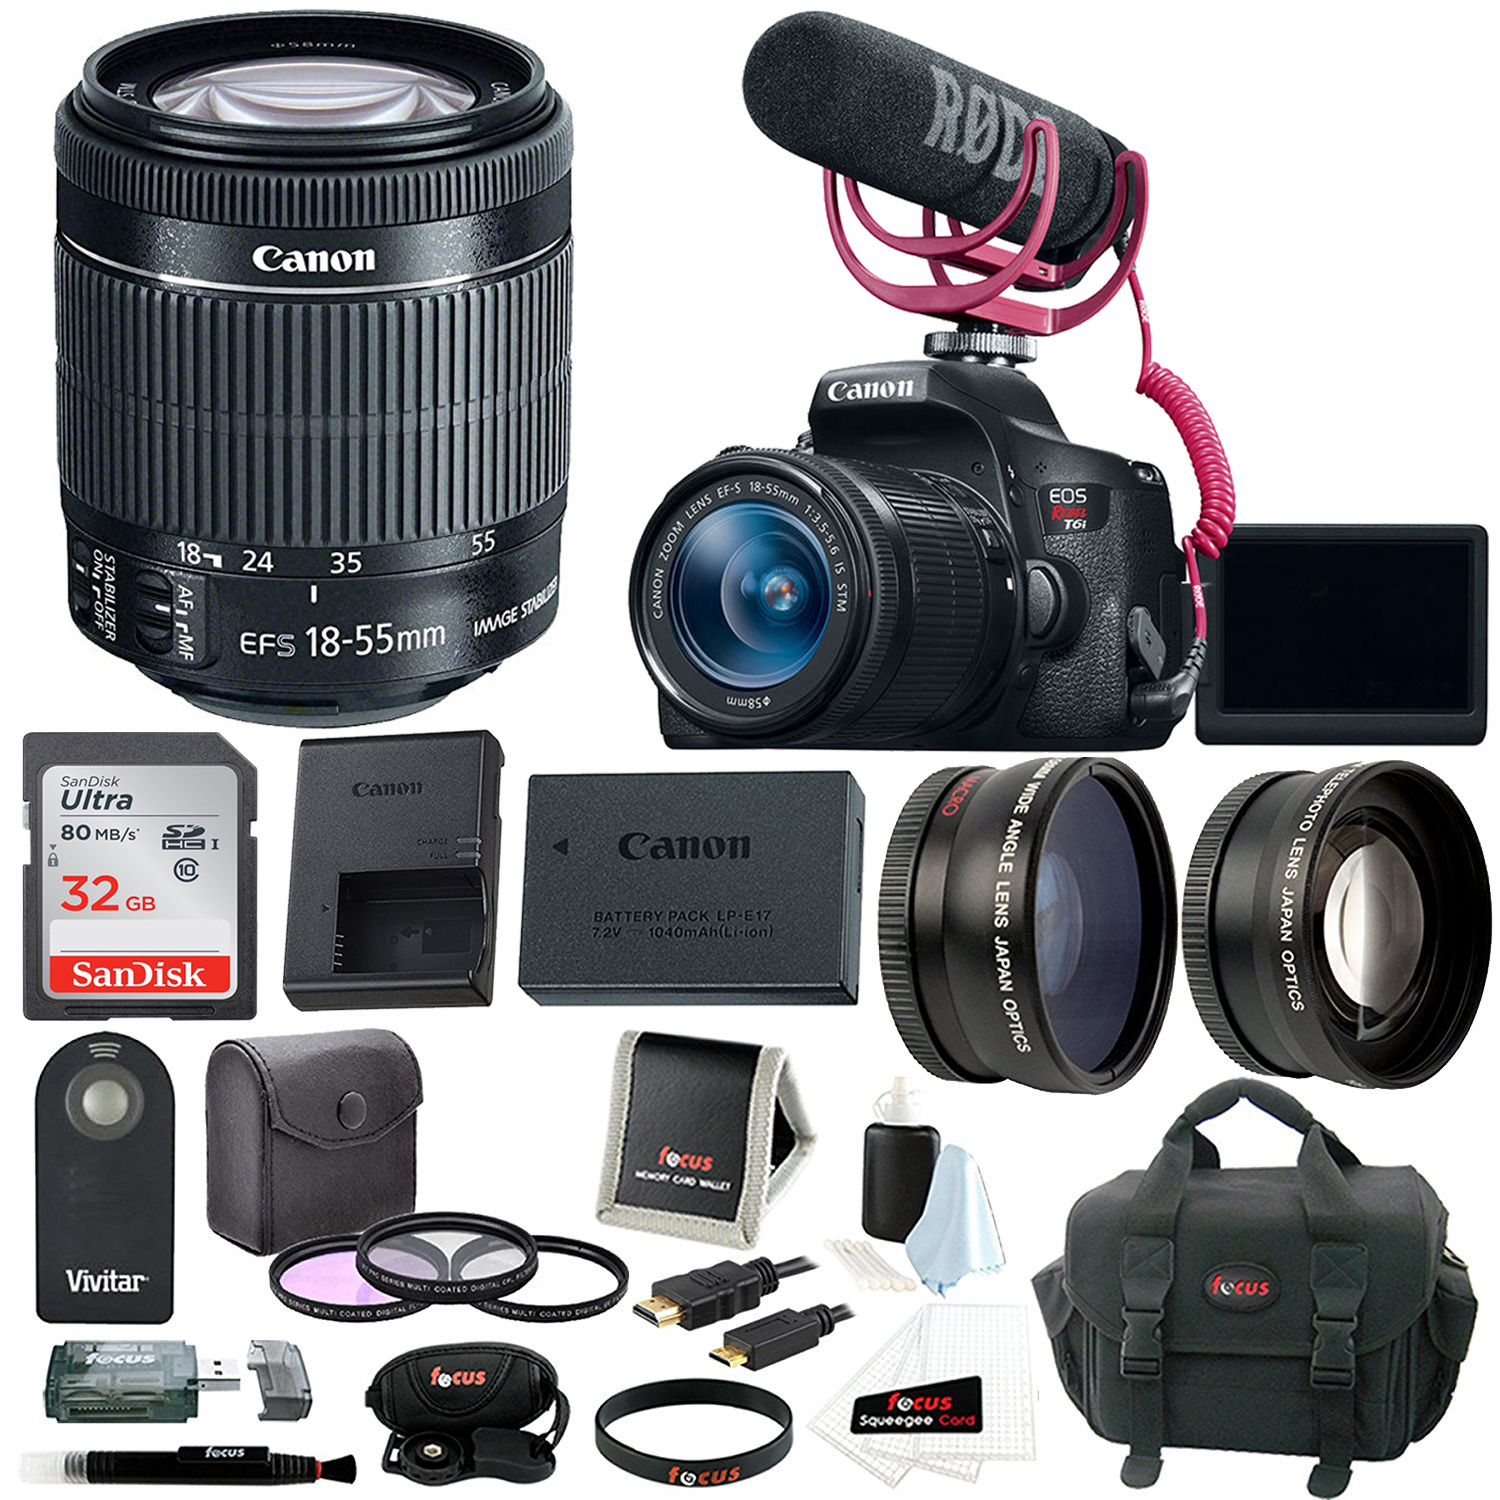 Canon EOS Rebel T6i DSLR Camera with 18-55mm Lens + Video Creator Kit + Accessory Bundle